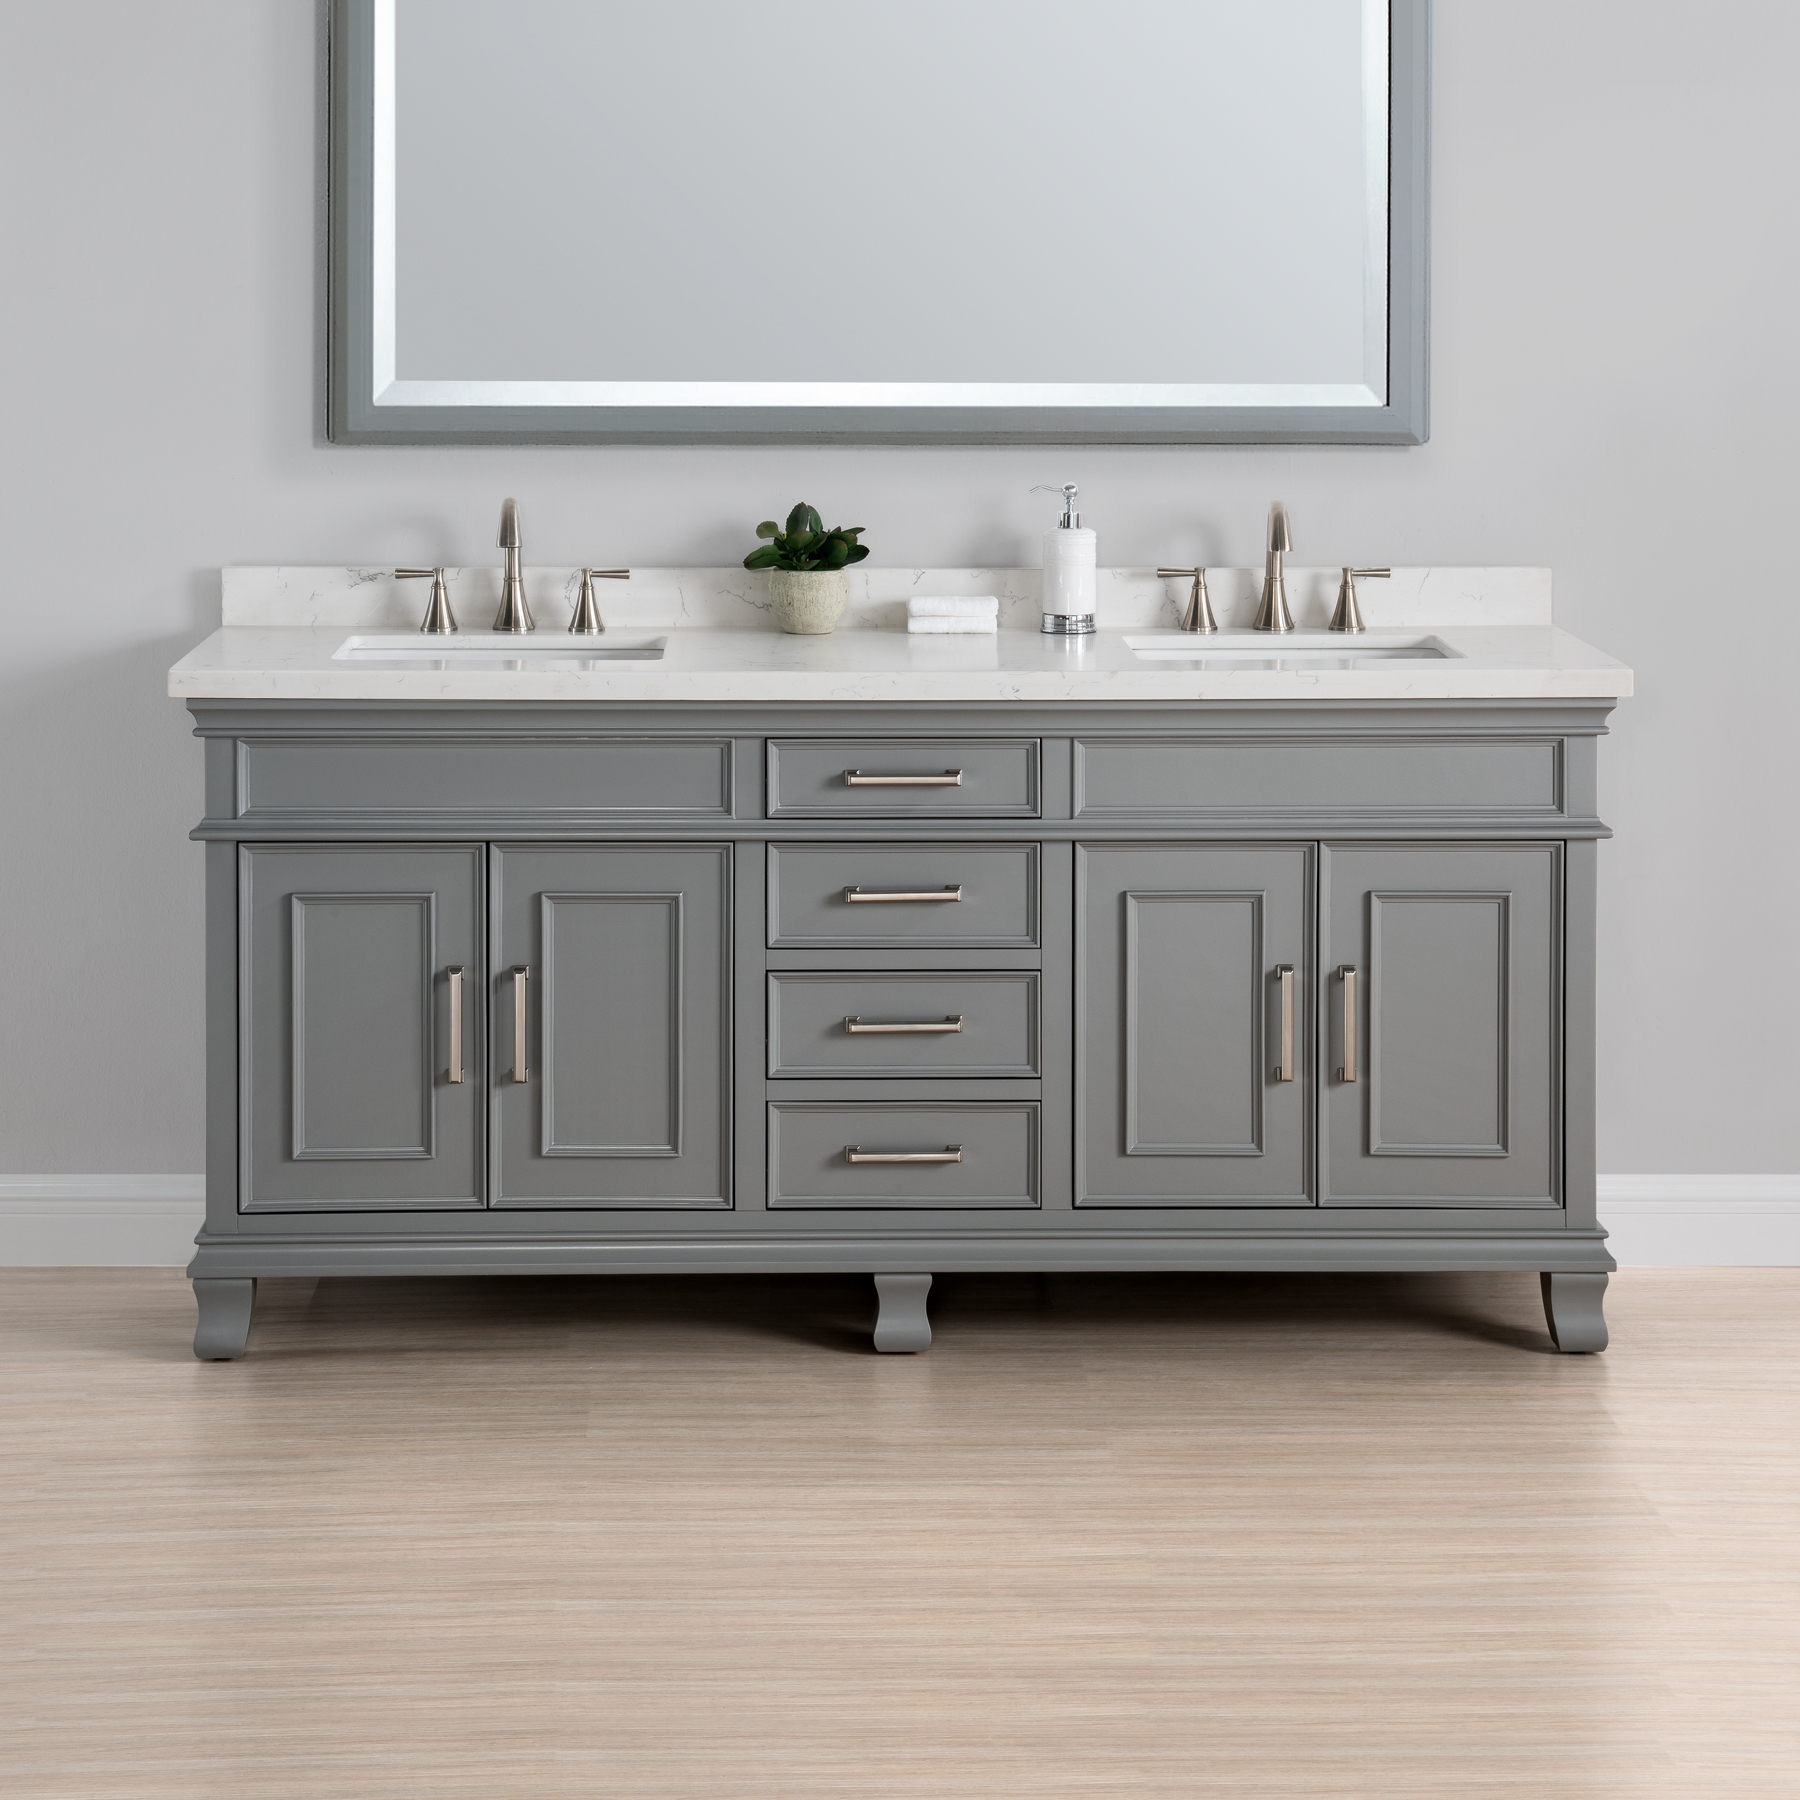 htm vanity by enkore double package sinks p